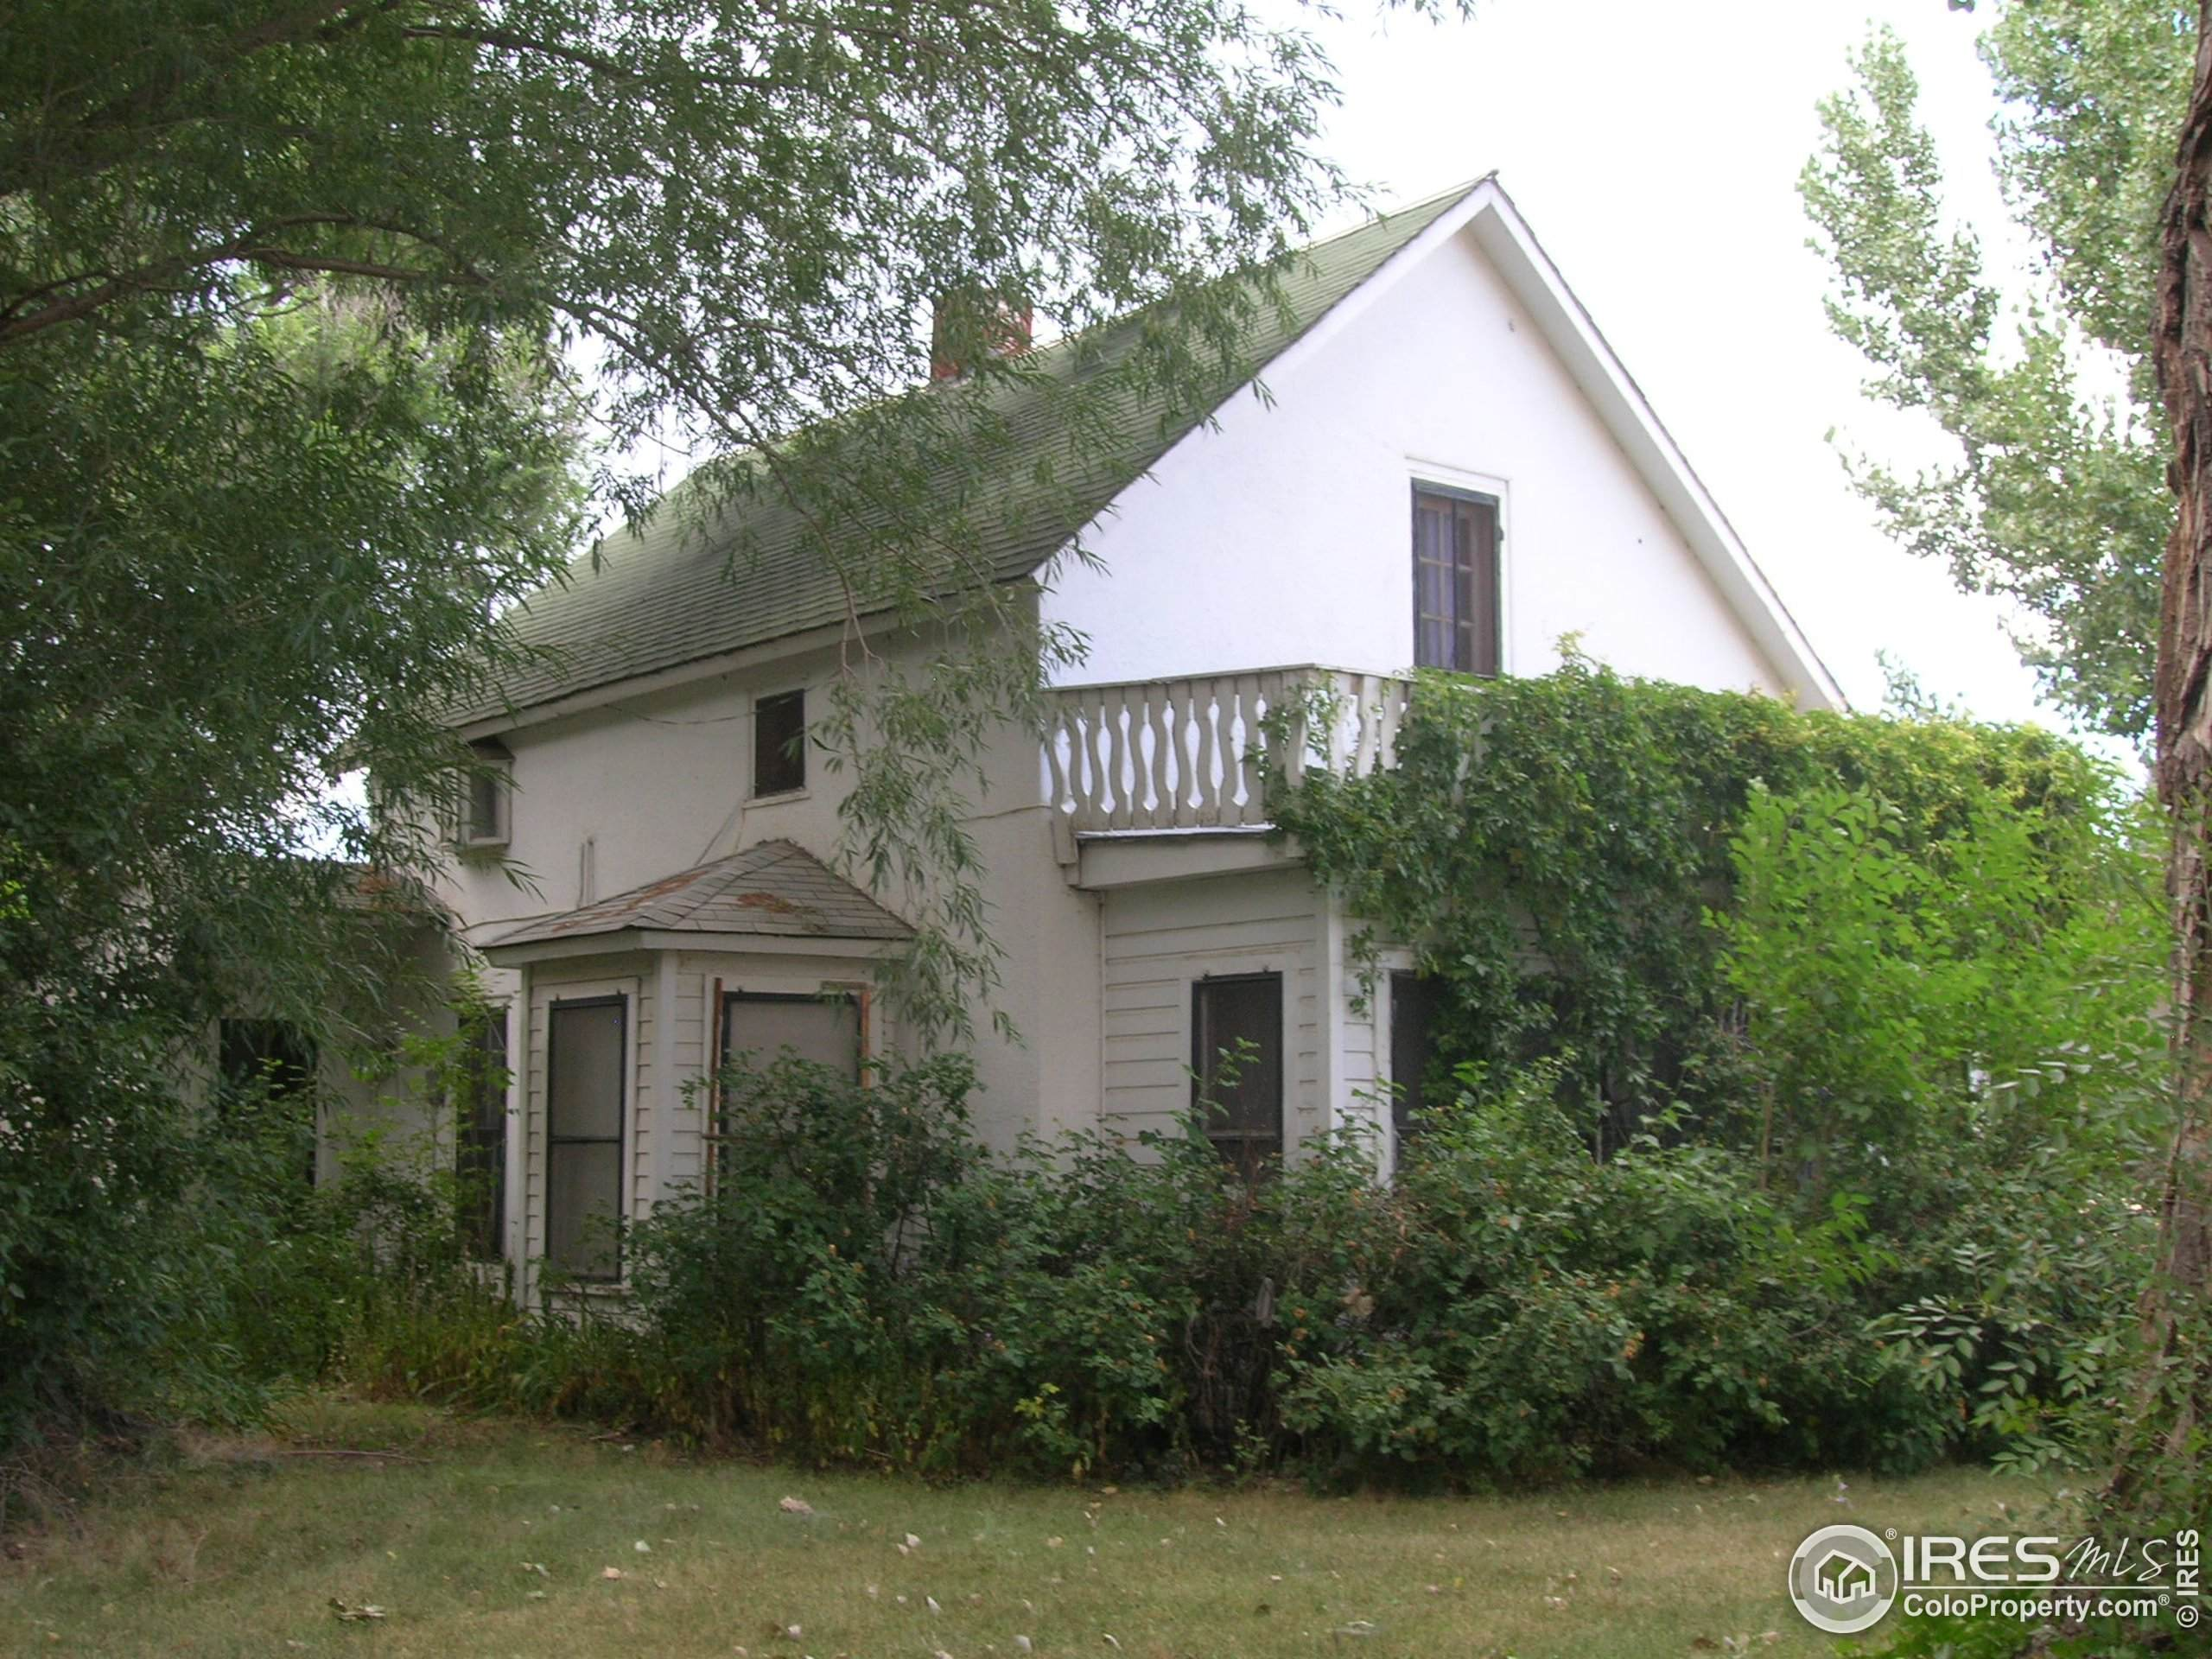 51 W Ranch Rd, Wiggins, CO 80654 (MLS #934846) :: Downtown Real Estate Partners